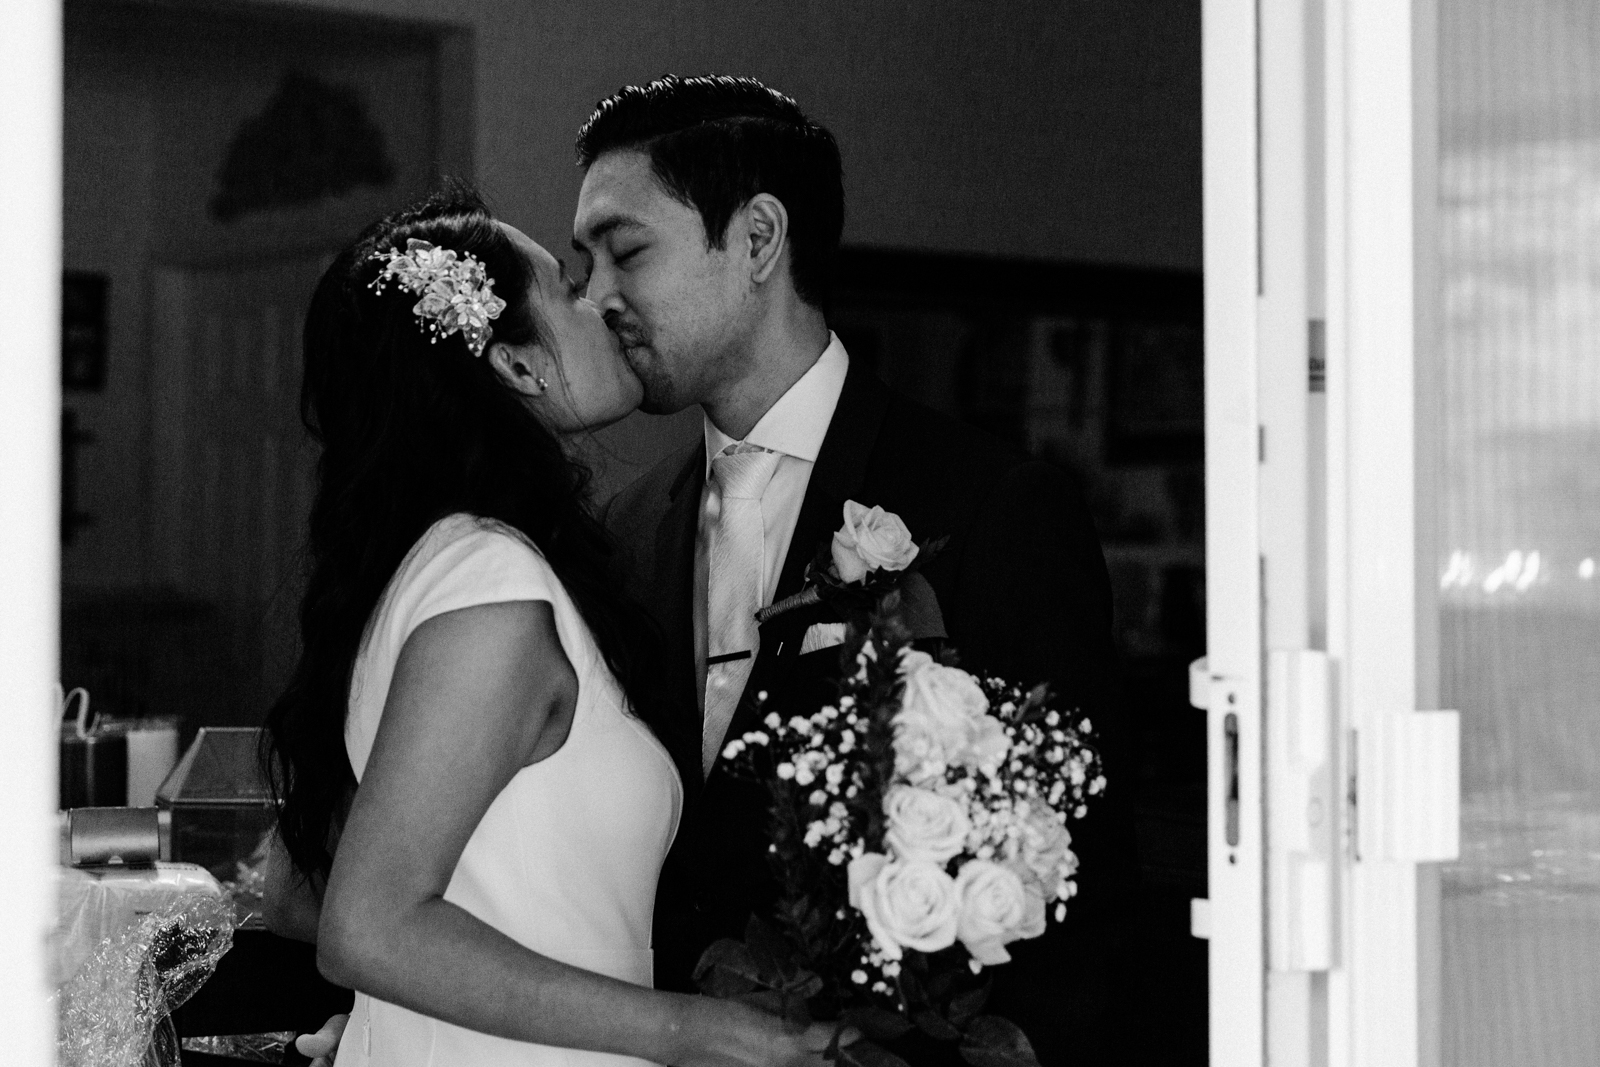 A bride and groom kissing at their micr-wedding in Southern California.